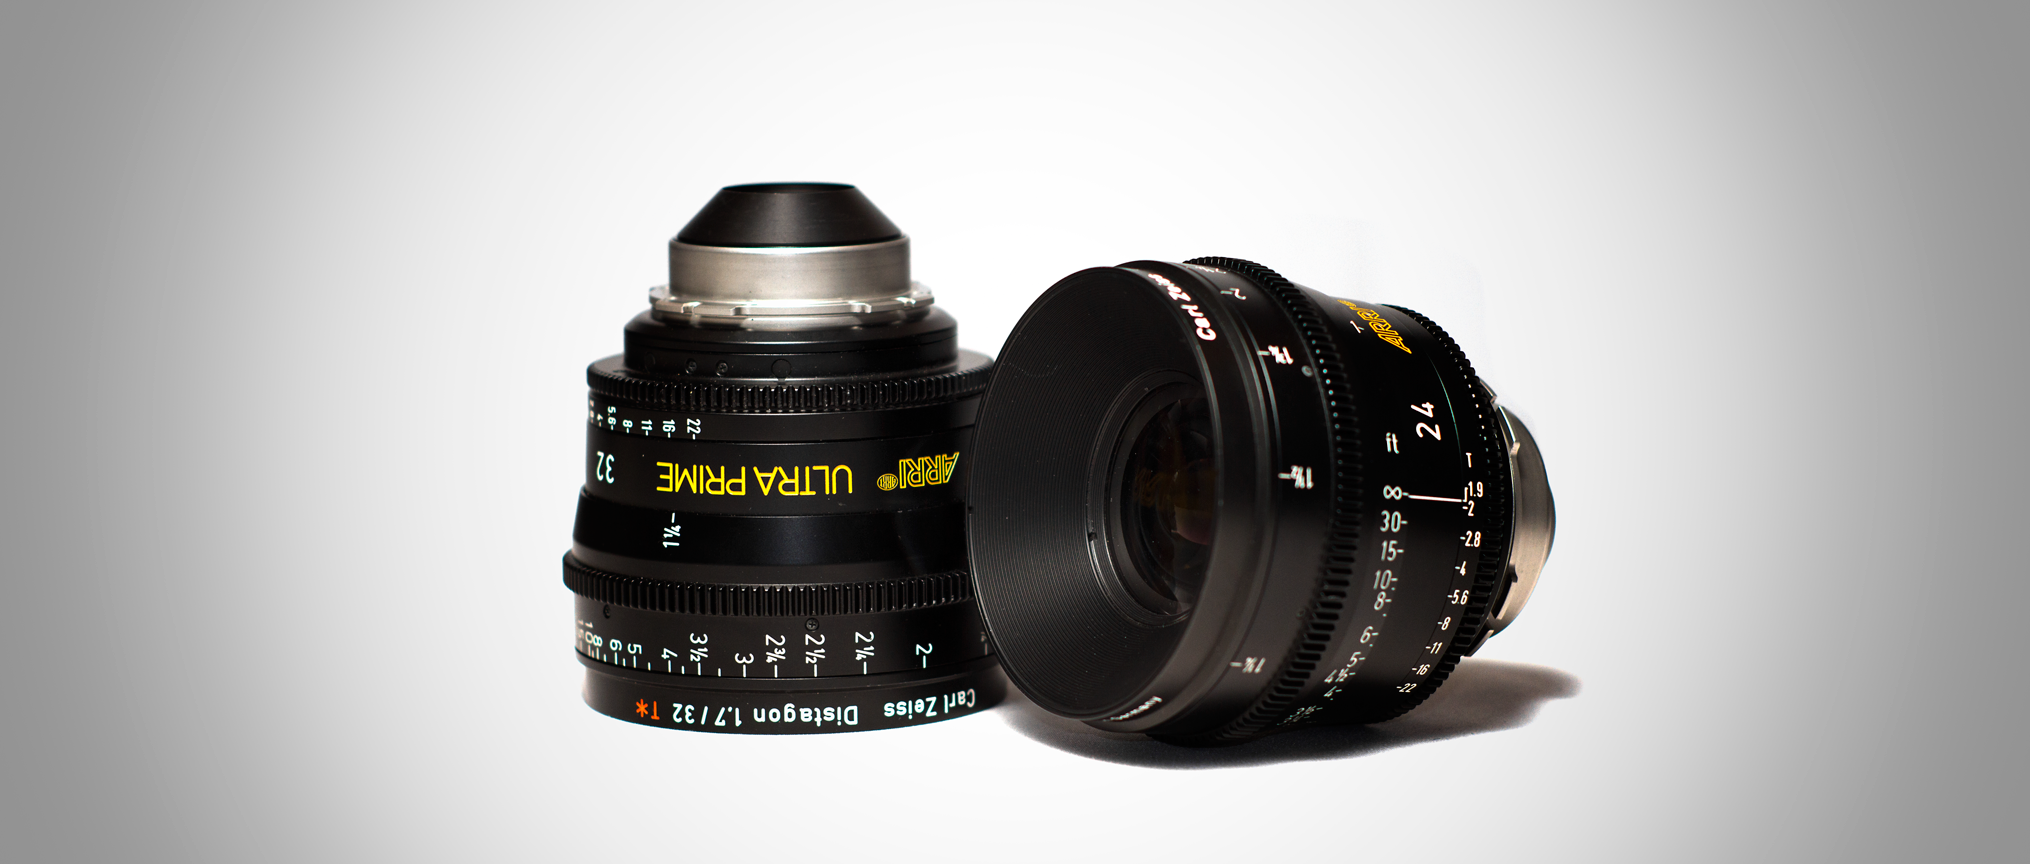 zeiss-ultra-prime-cineground-lens-set